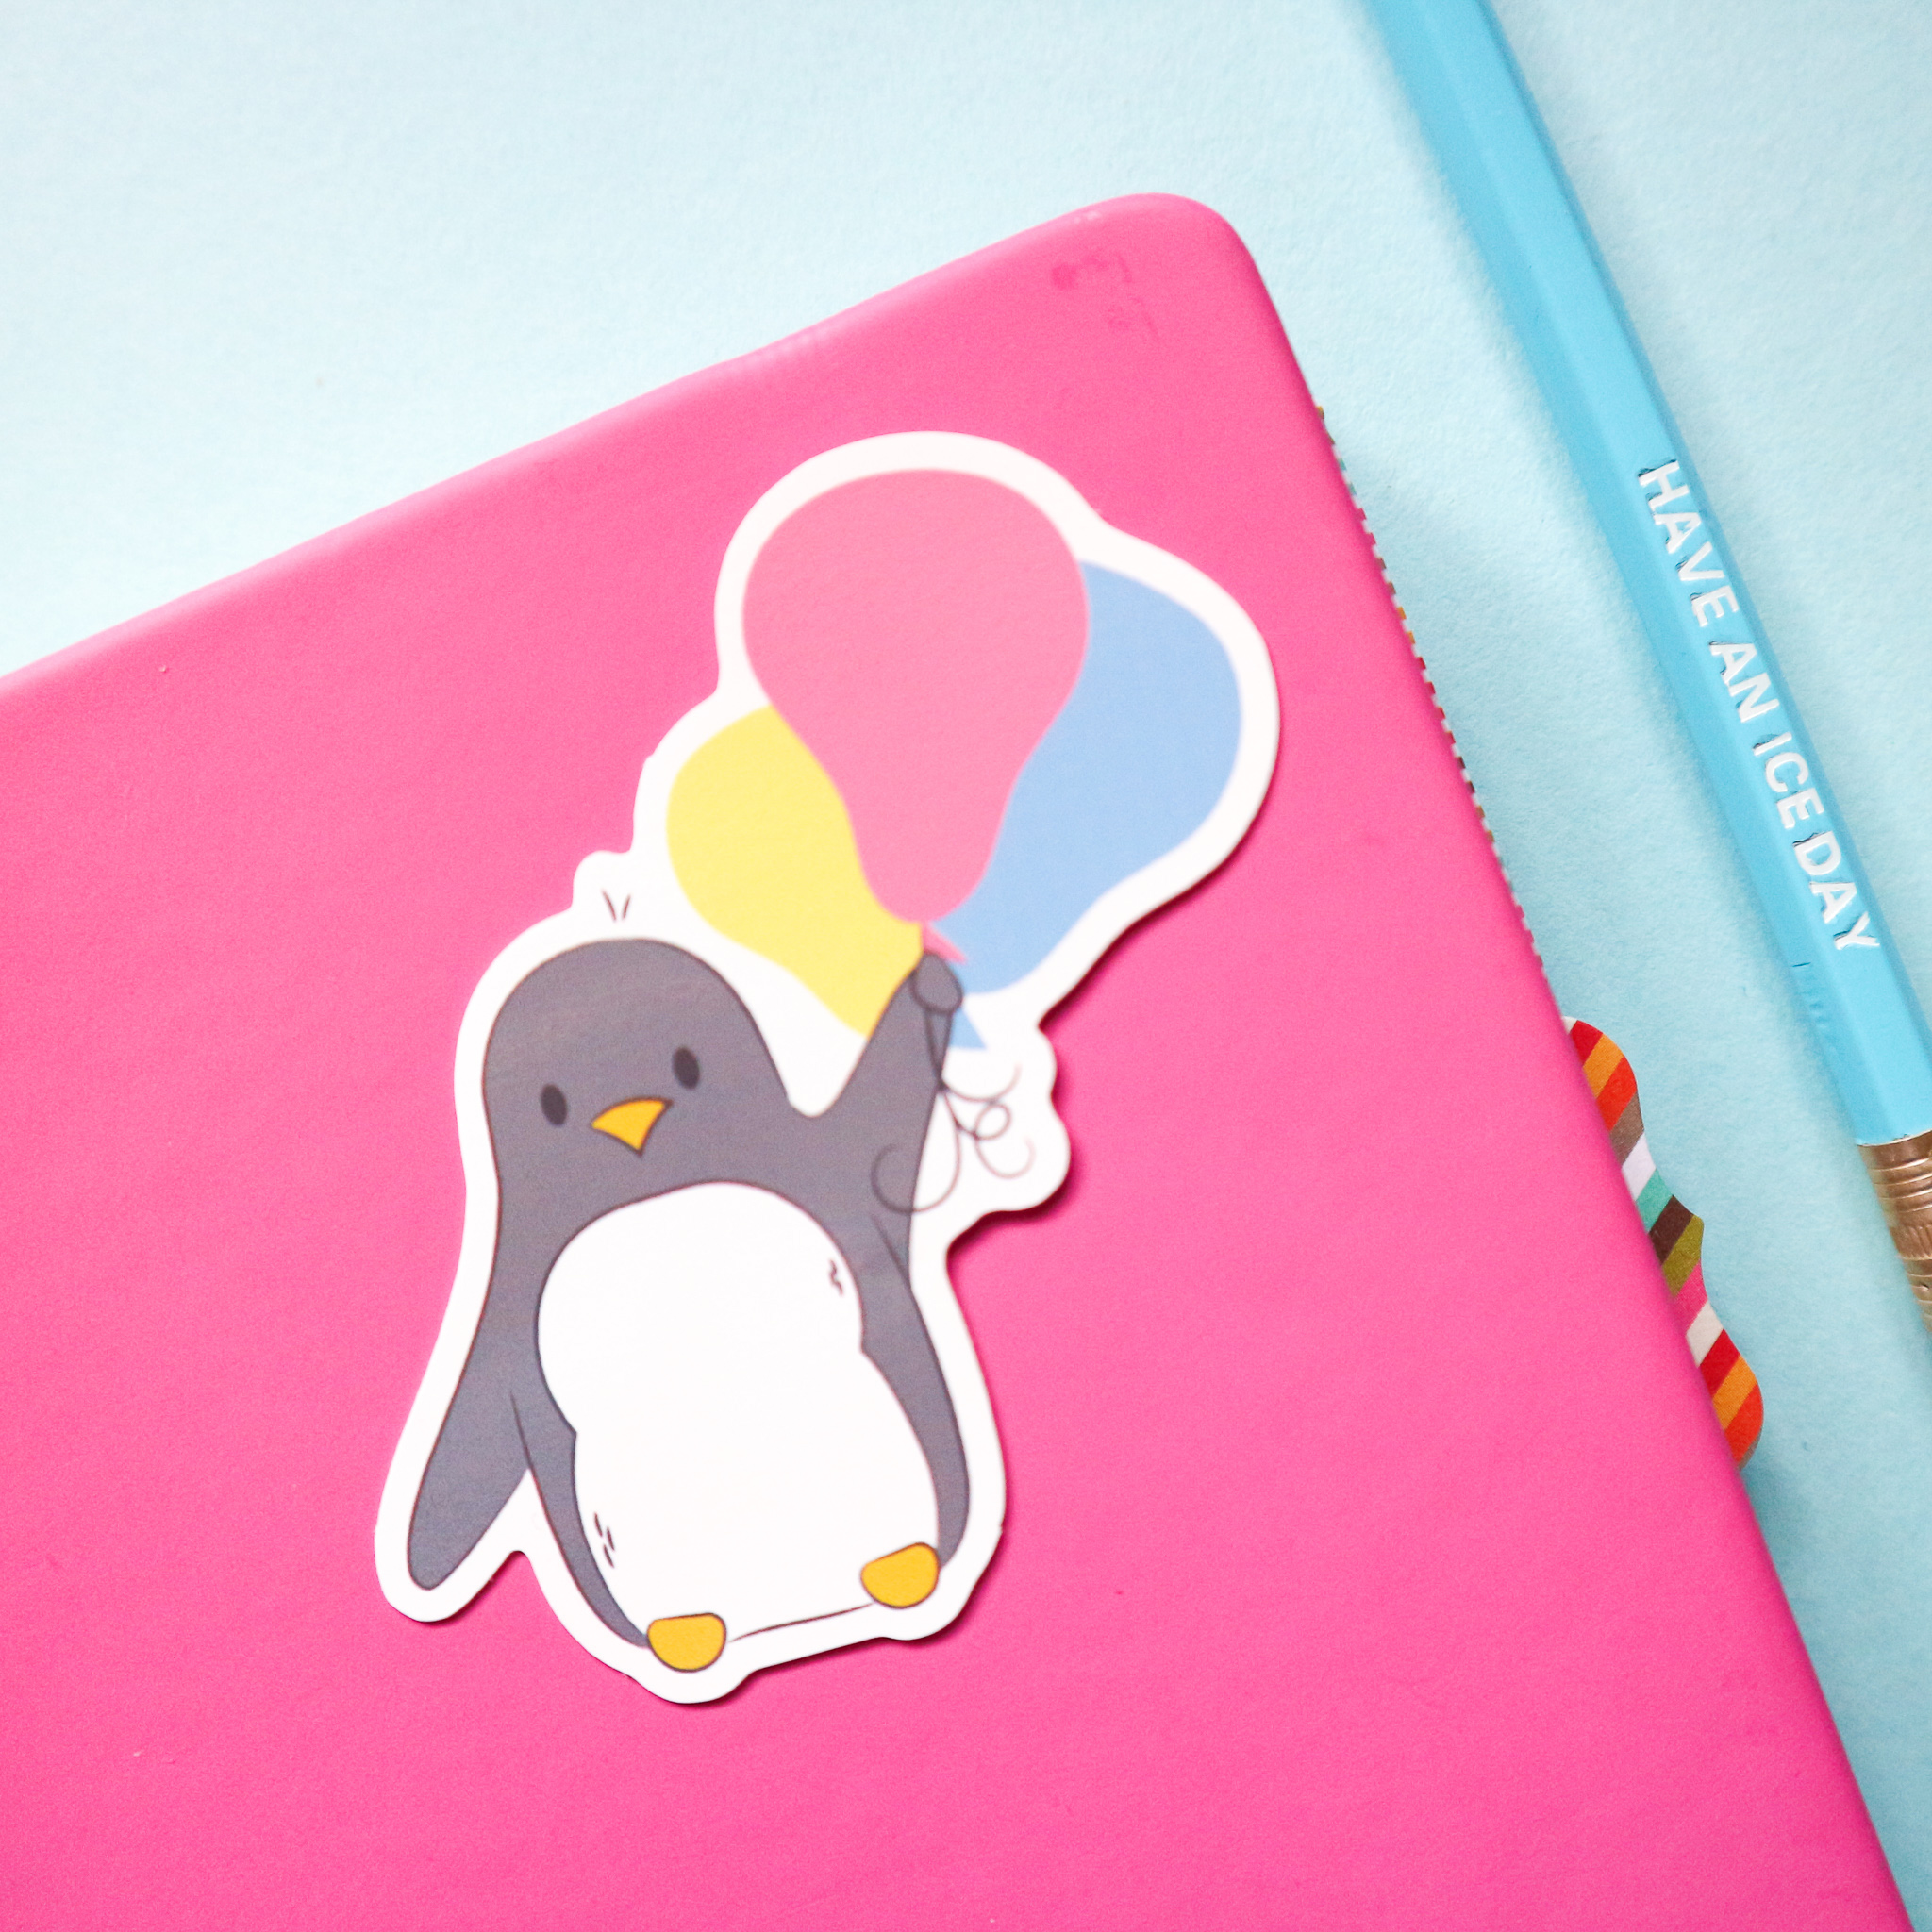 """an illustrated sticker of a cute penguin floating away with a bunch of balloons. The sticker is stuck on a pink notebook and styled with my """"Have an ice day"""" pencil."""